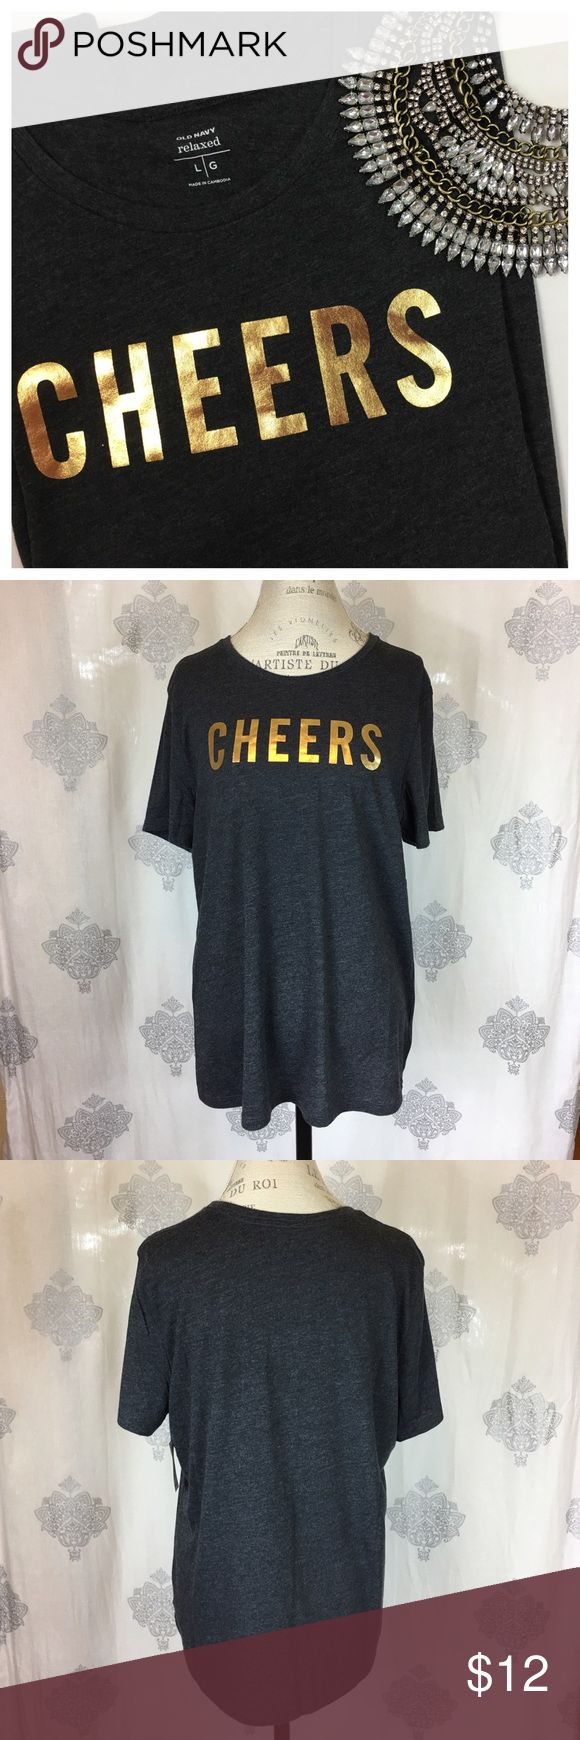 Graphic Tee Relaxed fit, super soft tee. Slightly sheer, dark heather gray with gold metallic script. New with tags, never worn. Offers welcome using the Offer button. No trades. Old Navy Tops Tees - Short Sleeve